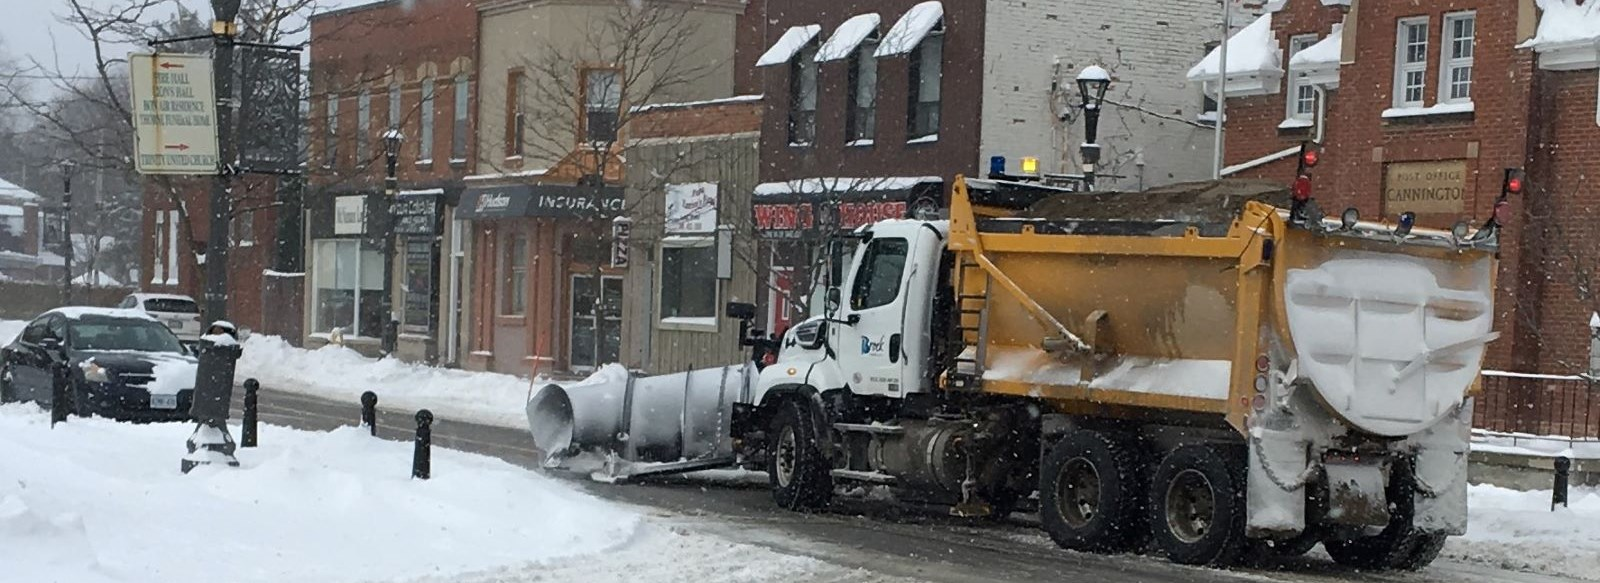 snow plow clearing snow from streets